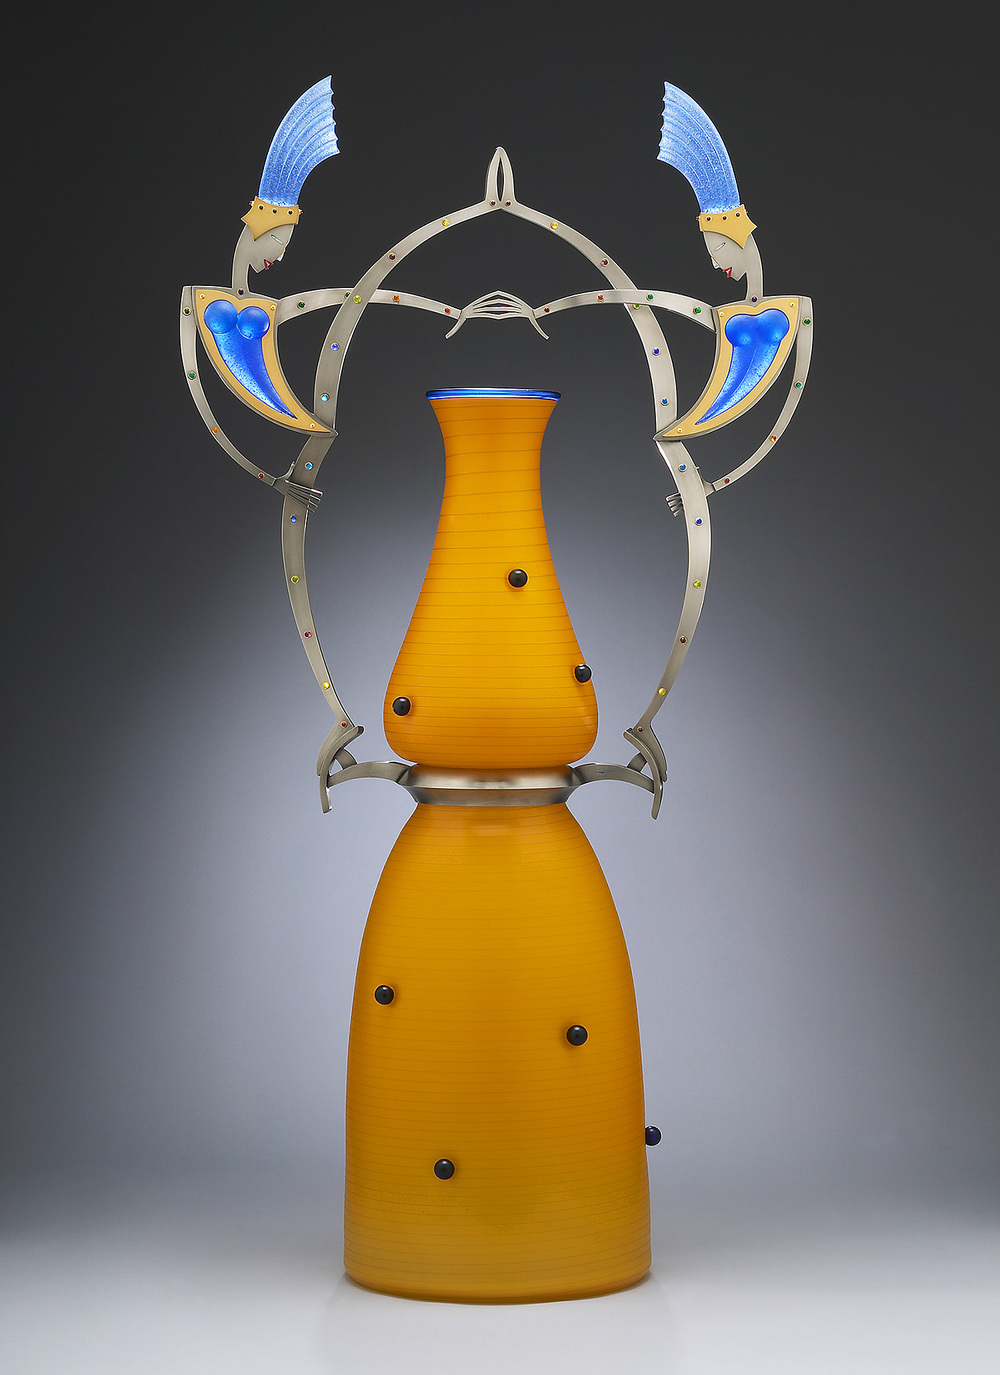 Shimmer   2005. Blown glass, nickel and gold-plated bronze, pate de verre, Vitrolite. 42 x 12½ x 11""